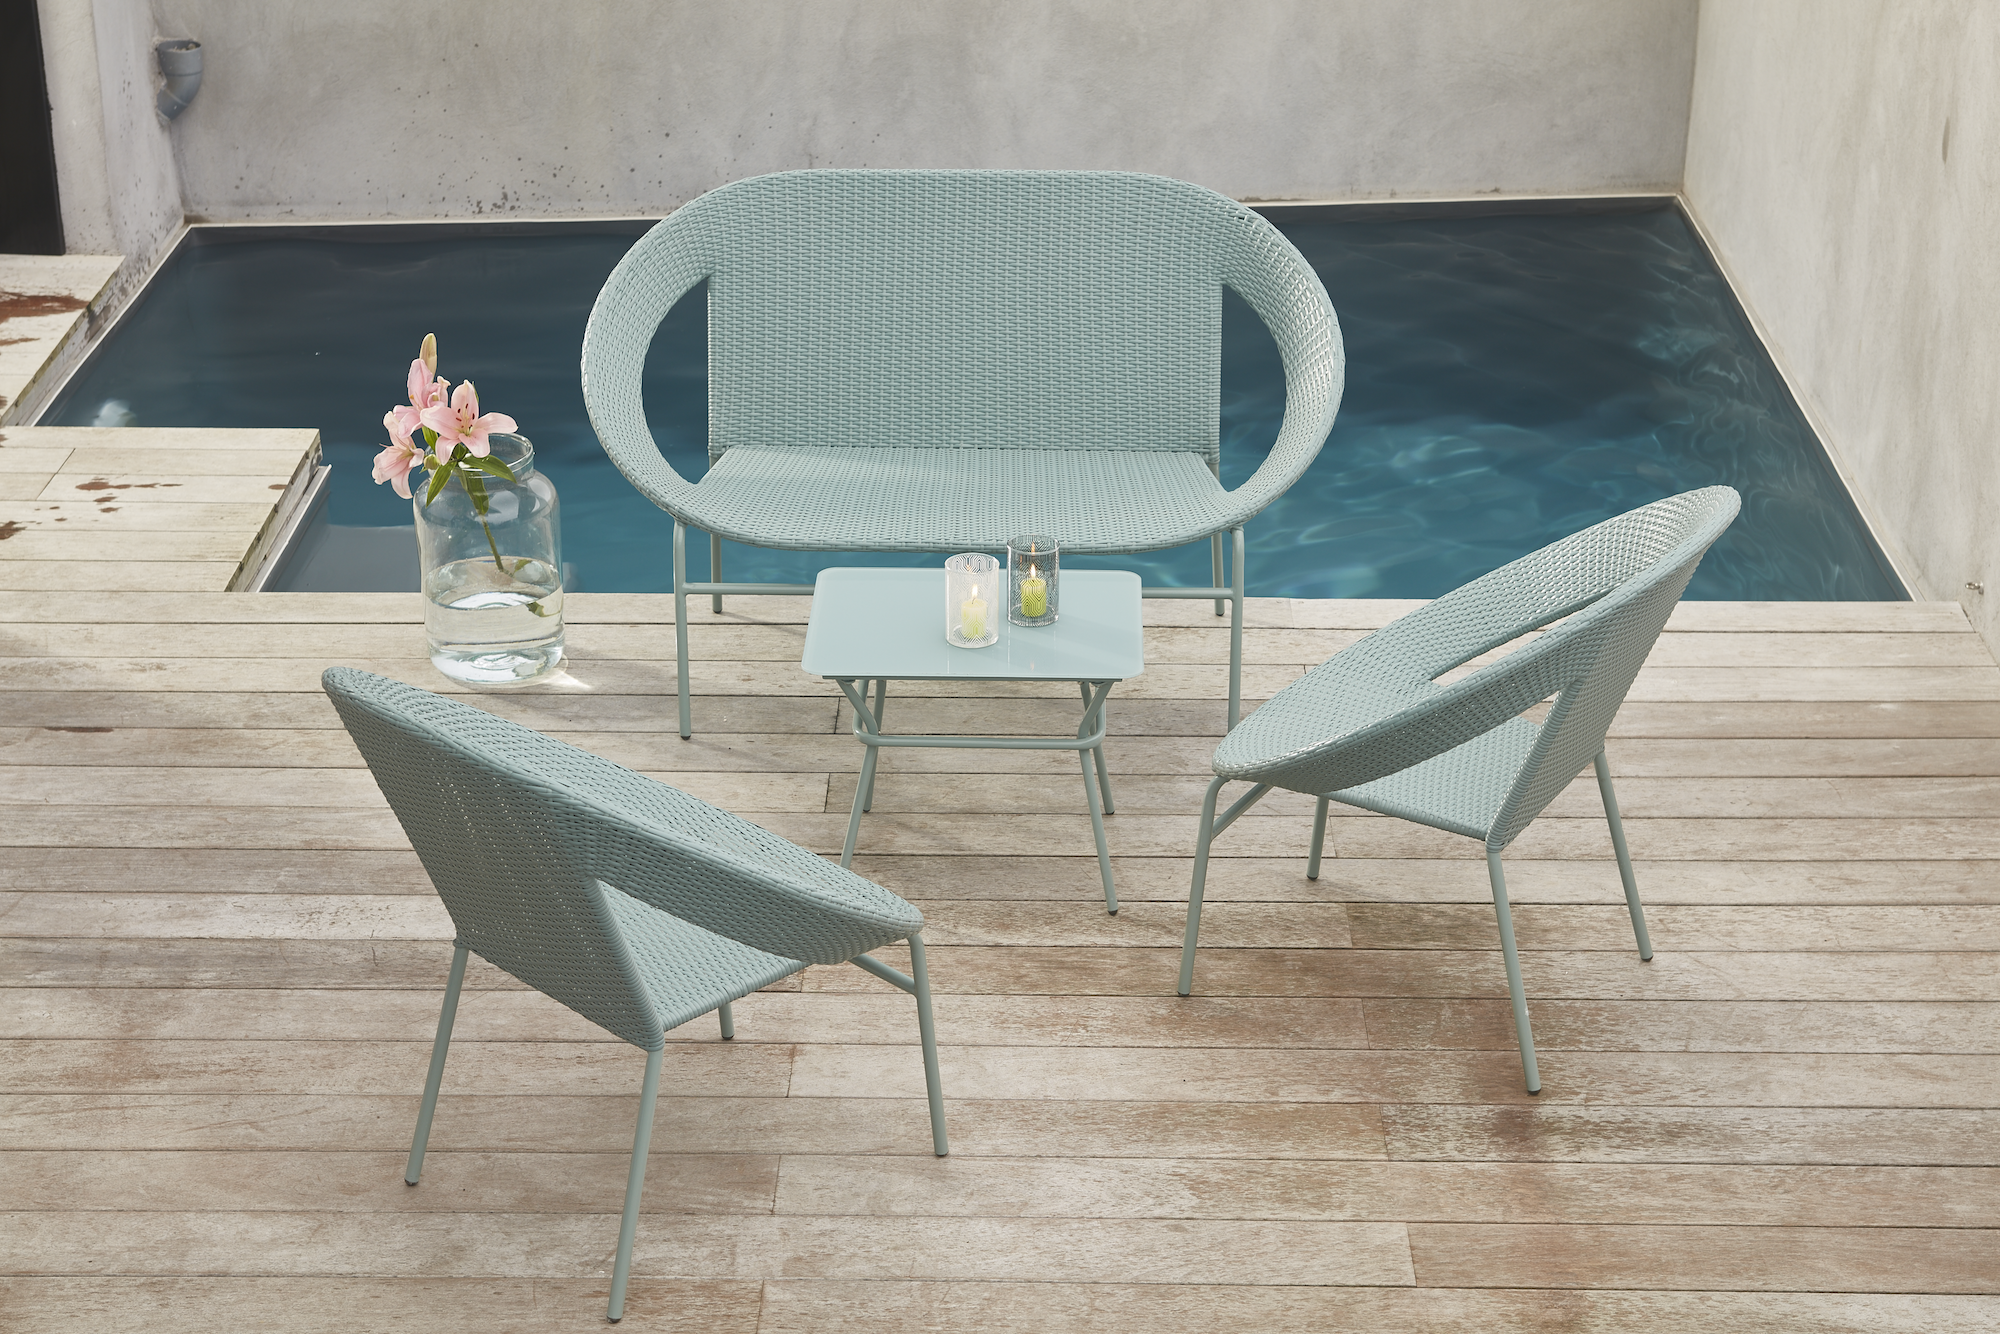 Salon de jardin m ryl chez alin a inspiration indus for Salon de jardin detente